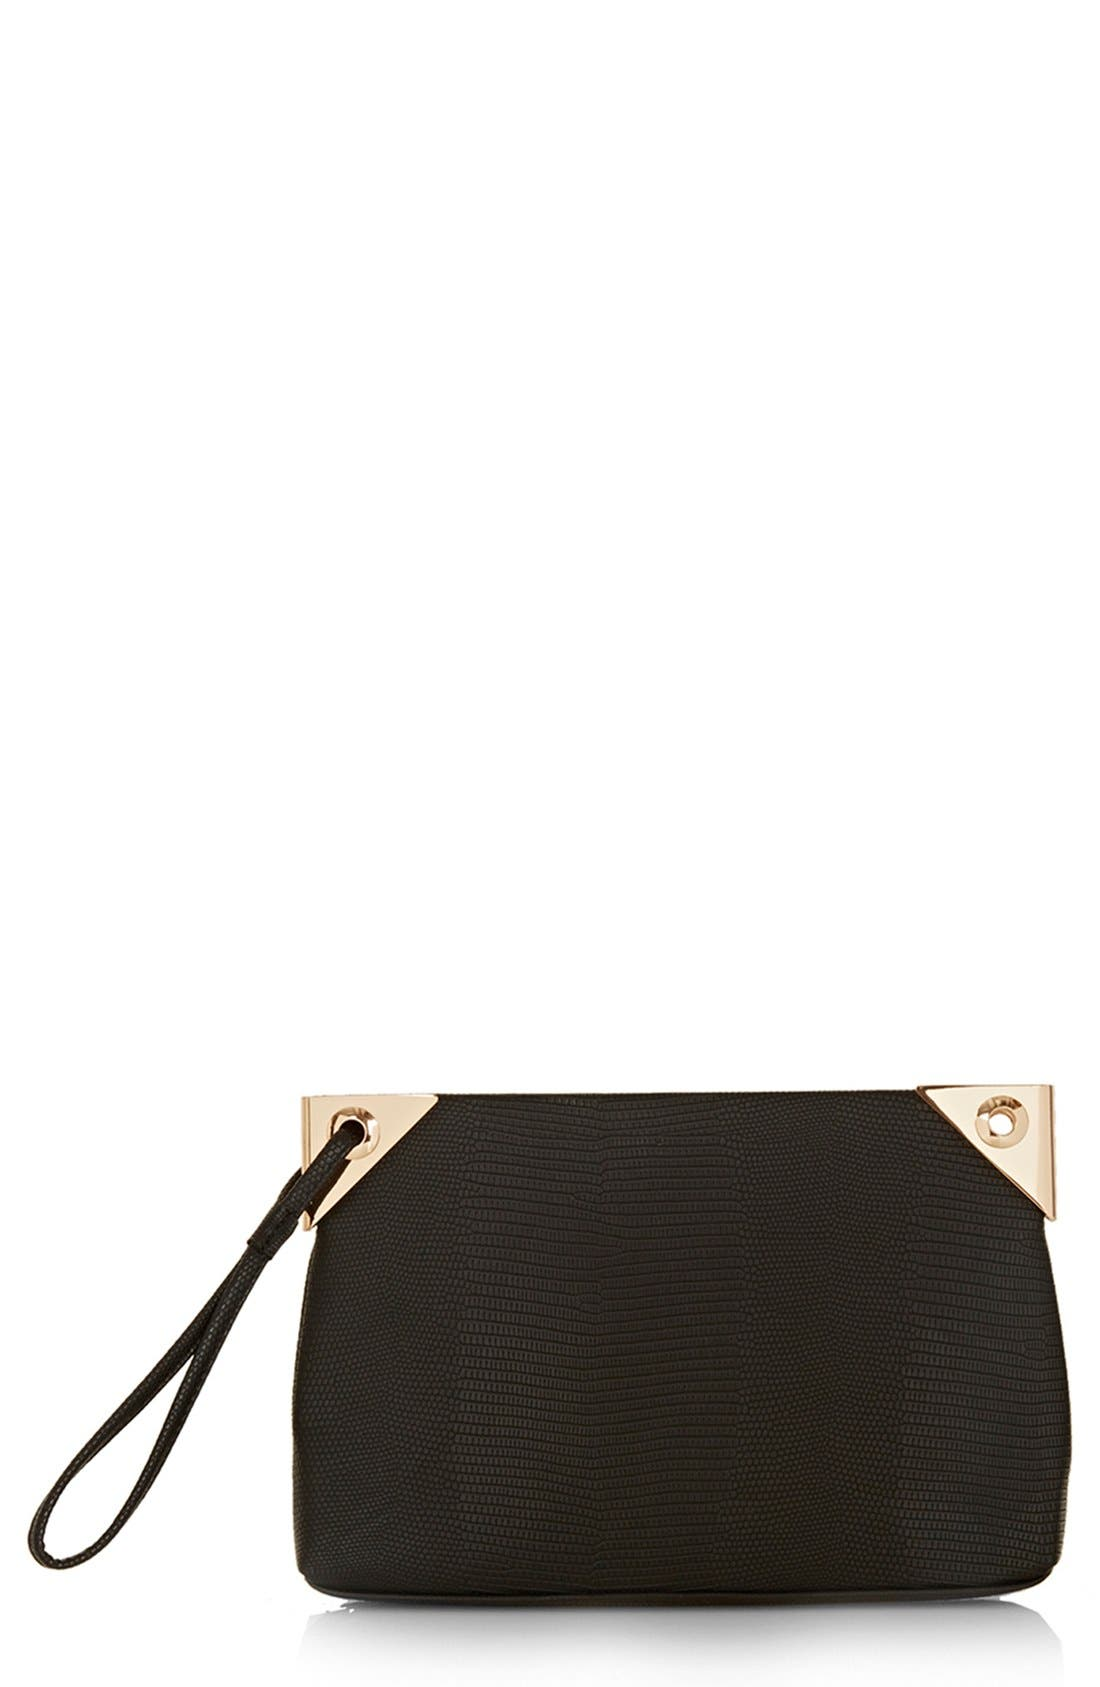 Main Image - Topshop 'Hinge' Lizard Embossed Clutch